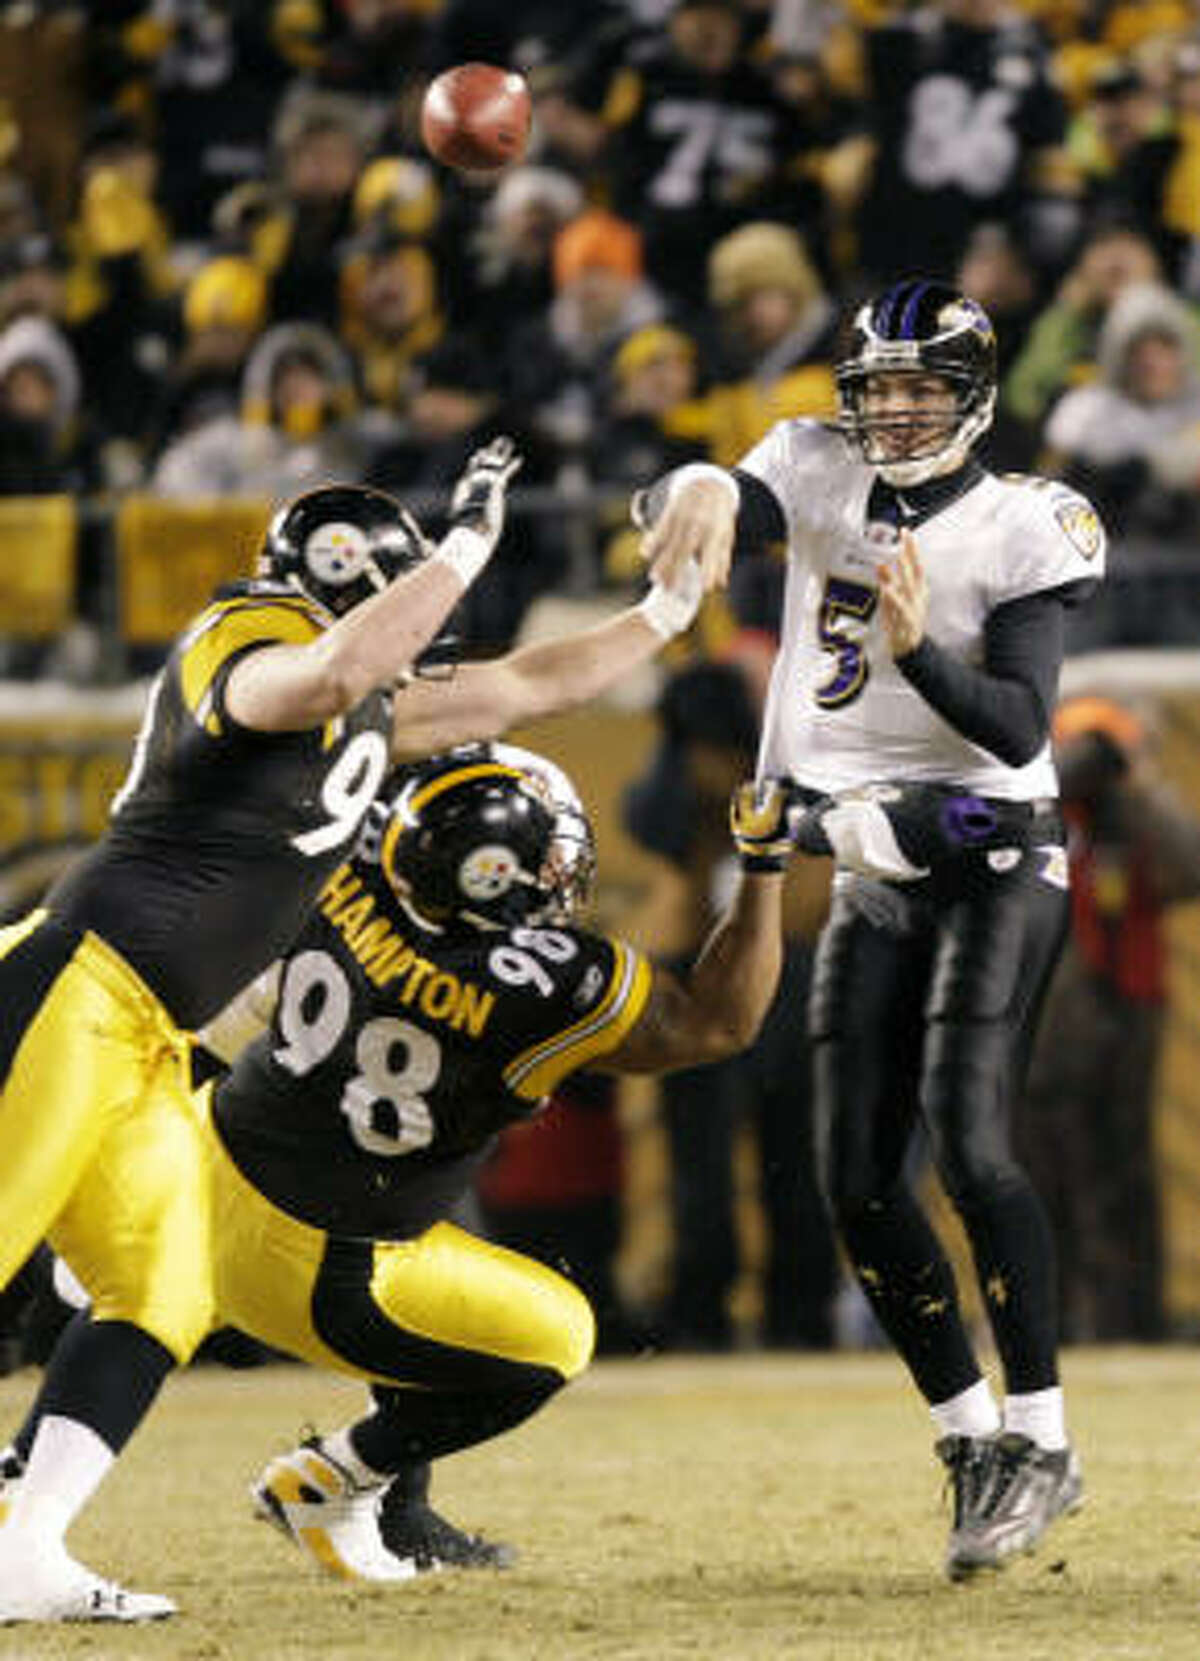 Ravens quarterback Joe Flacco throws over Steelers defensive linemen Aaron Smith and Casey Hampton while avoiding a sack during the first quarter.